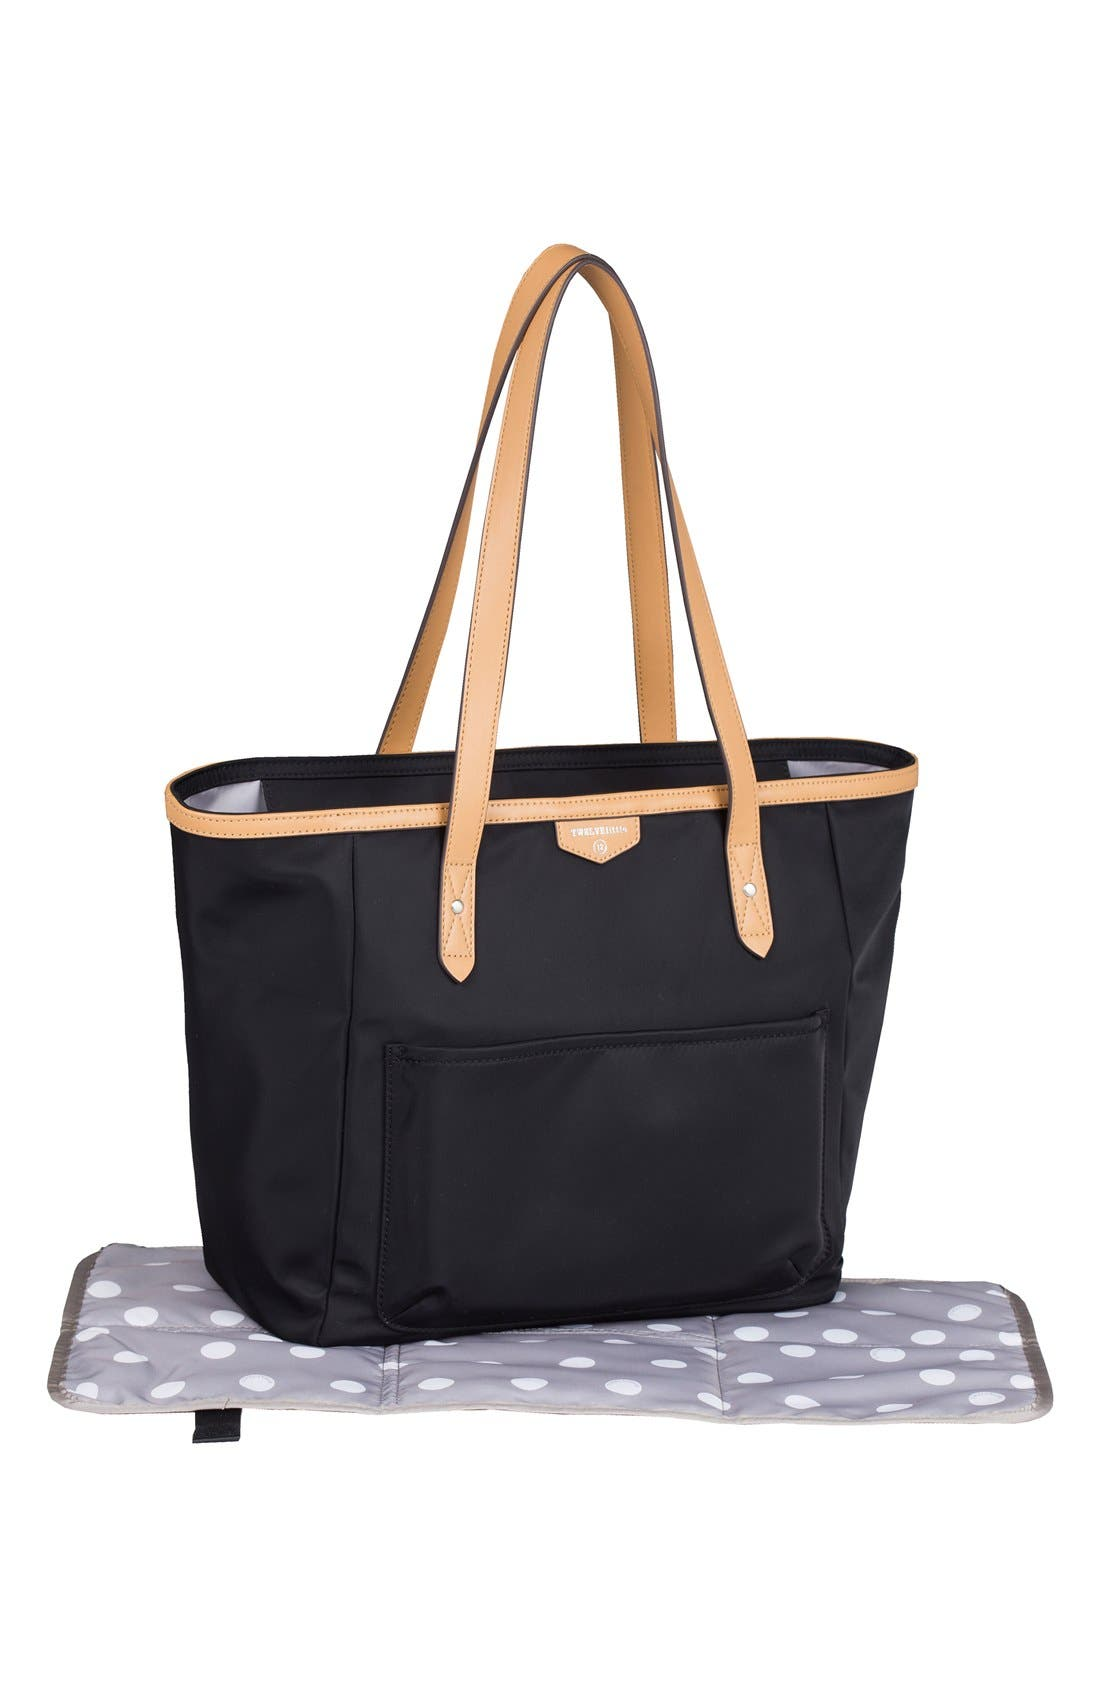 'Everyday' Diaper Tote,                             Alternate thumbnail 3, color,                             001